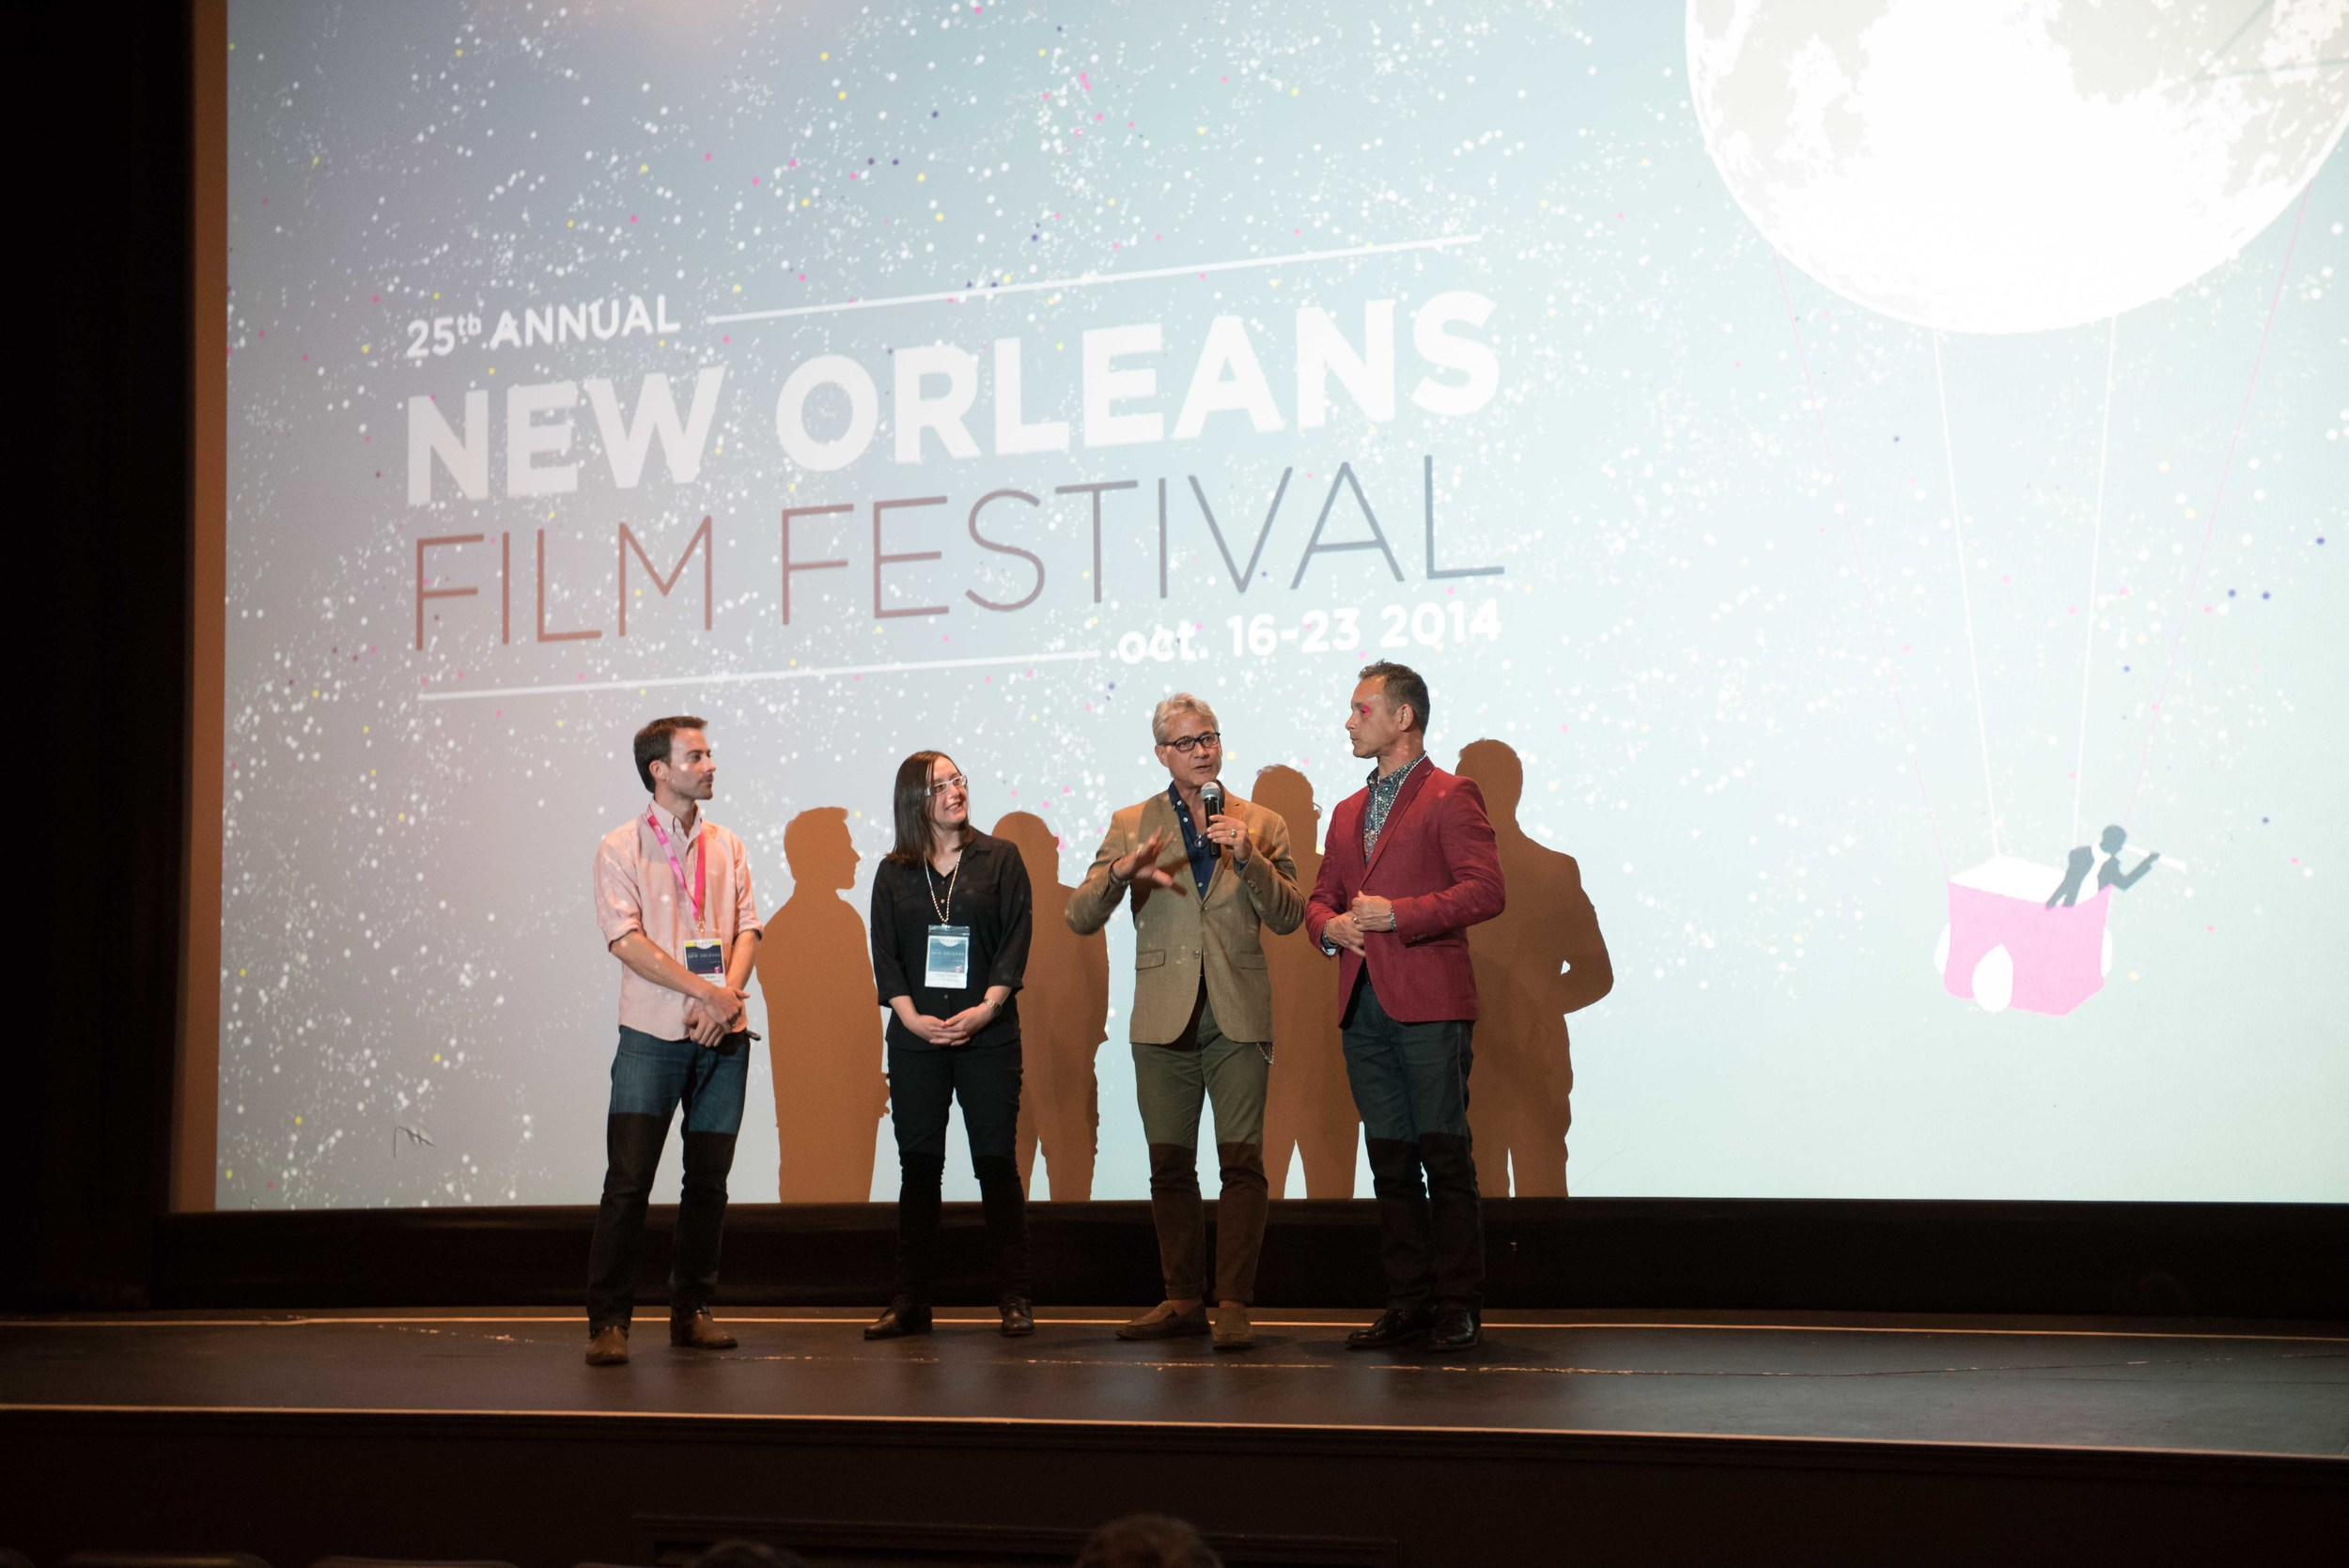 NEW ORLEANS, LA - October 24, 2014: New Orleans Film Society Film presents the premiere of Back on Board during the 2014 New Orleans Film Fest at the Prytania Theater in New Orleans, Louisiana (photo by Adrienne Battistella, 2014)